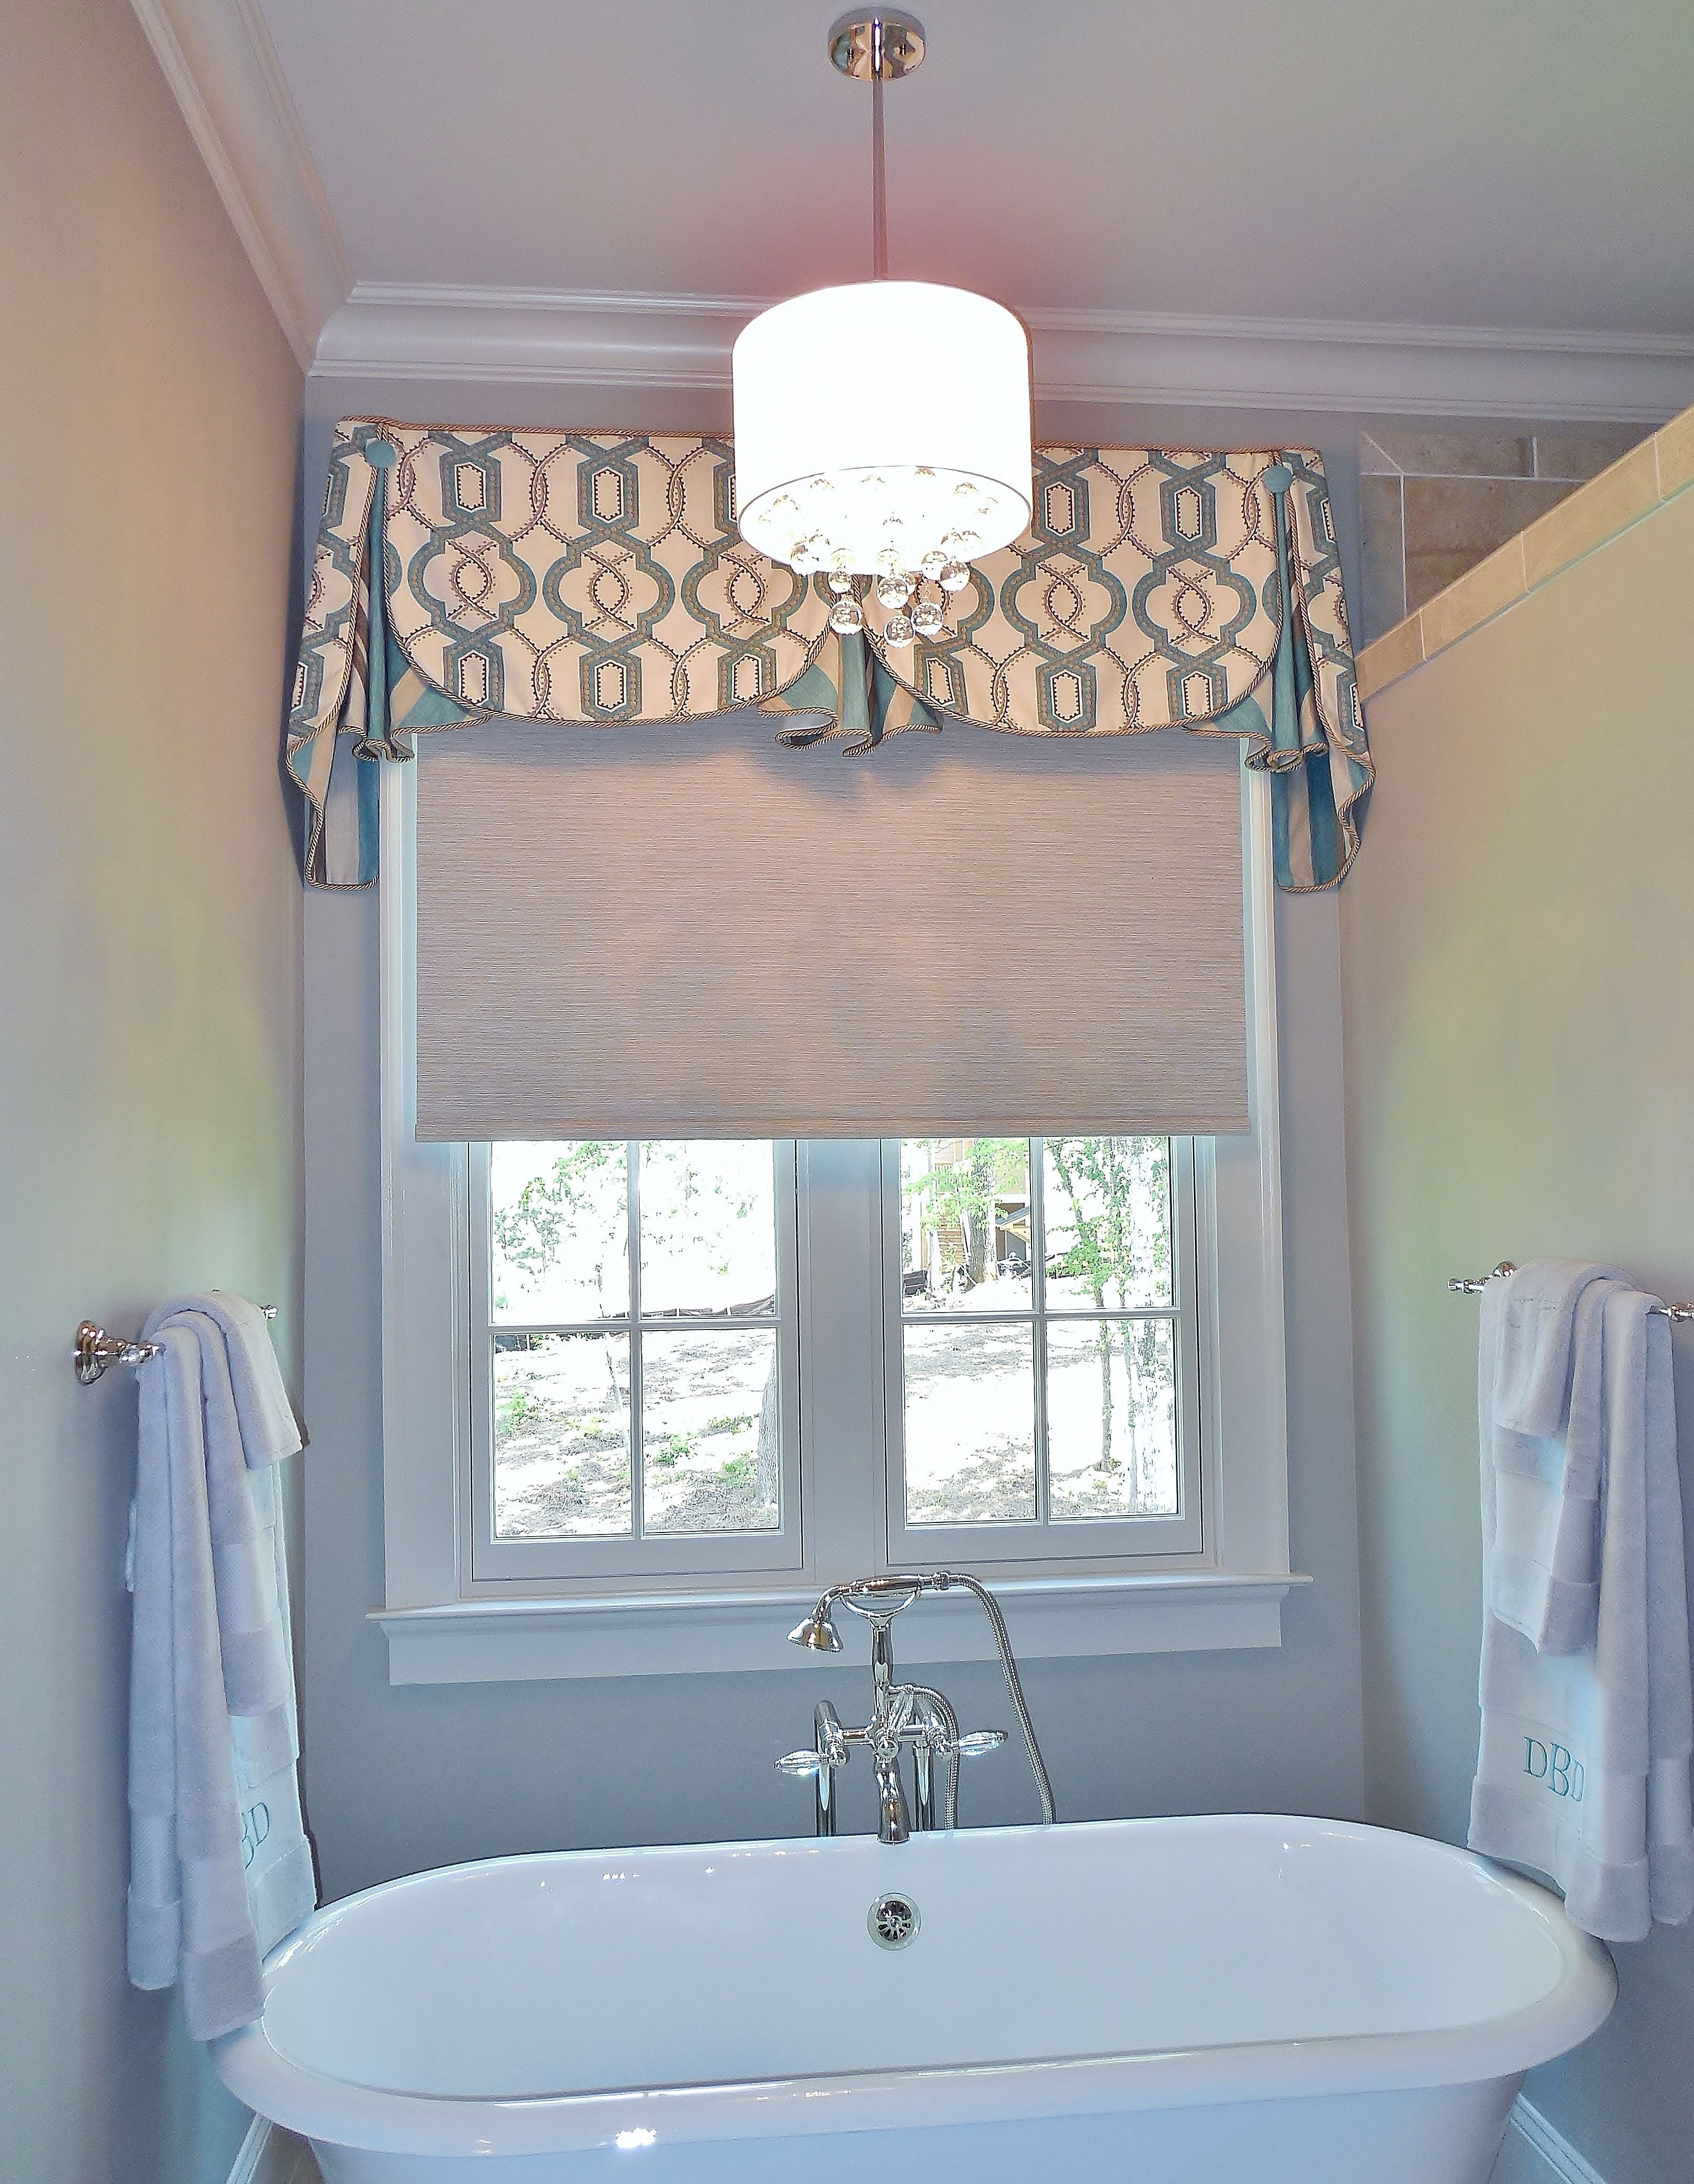 The perfect place for a Motorized Shade is over the tub This one